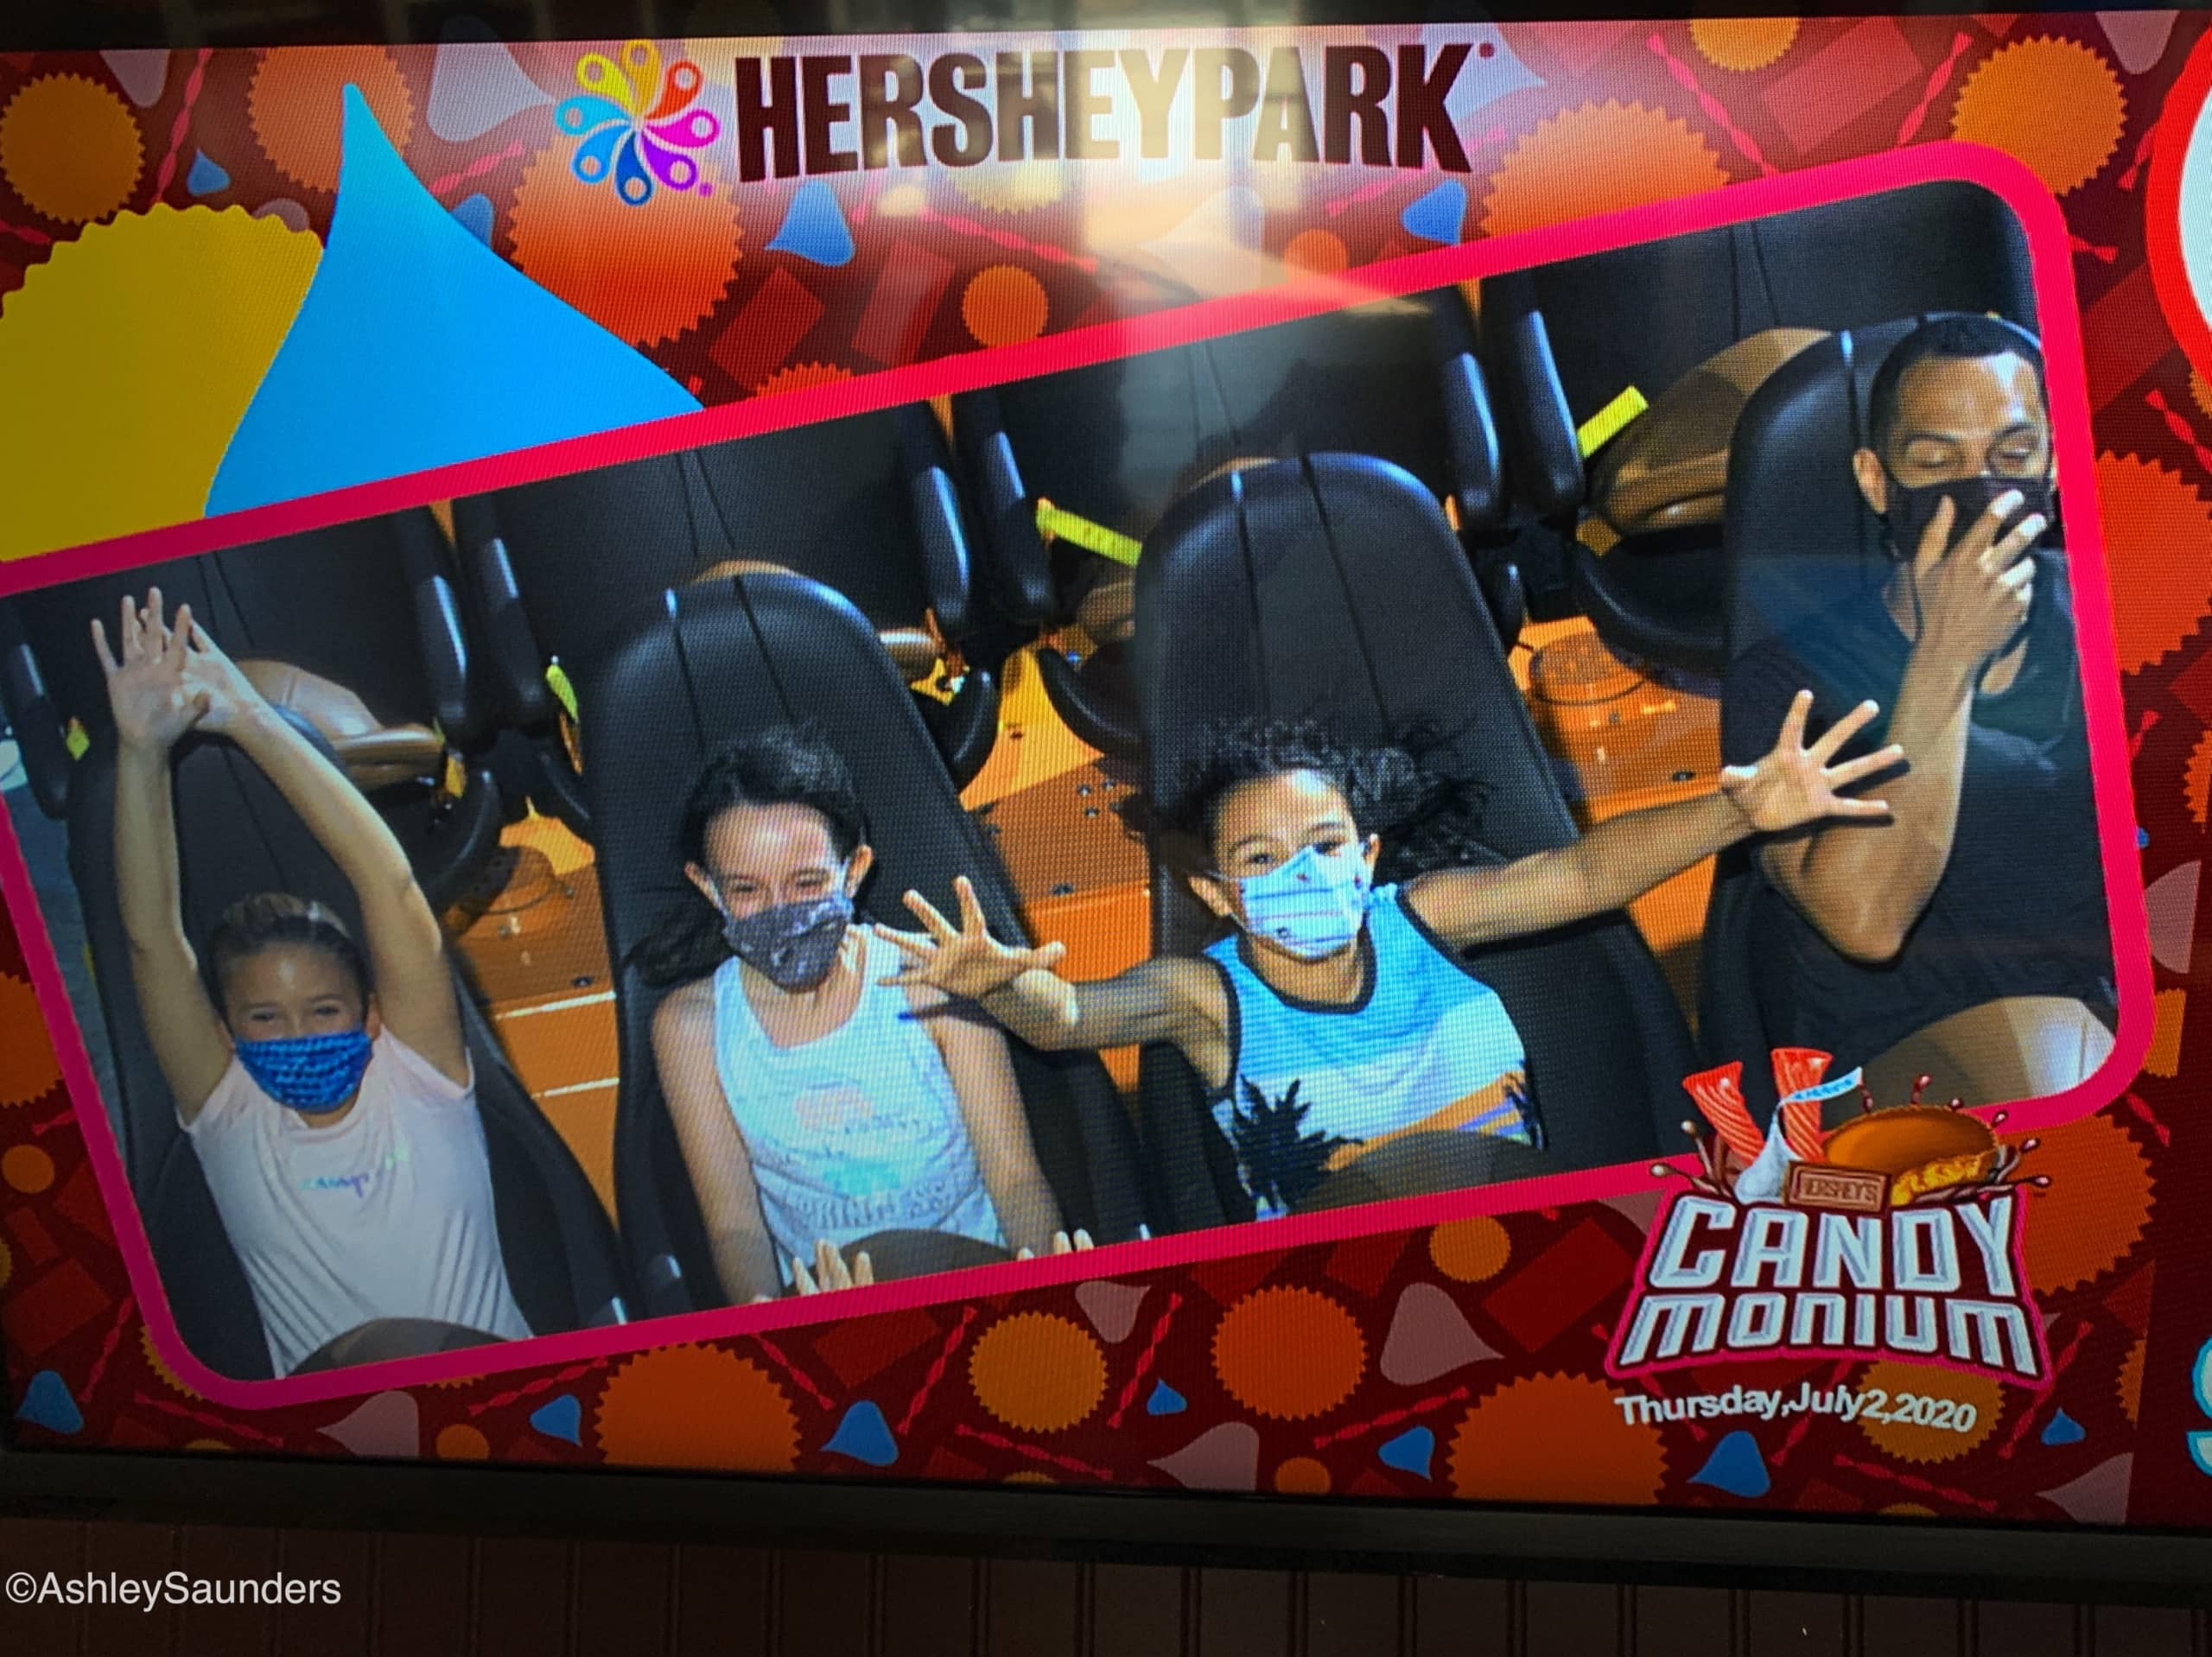 Visiting Hersheypark in 2020 Masks